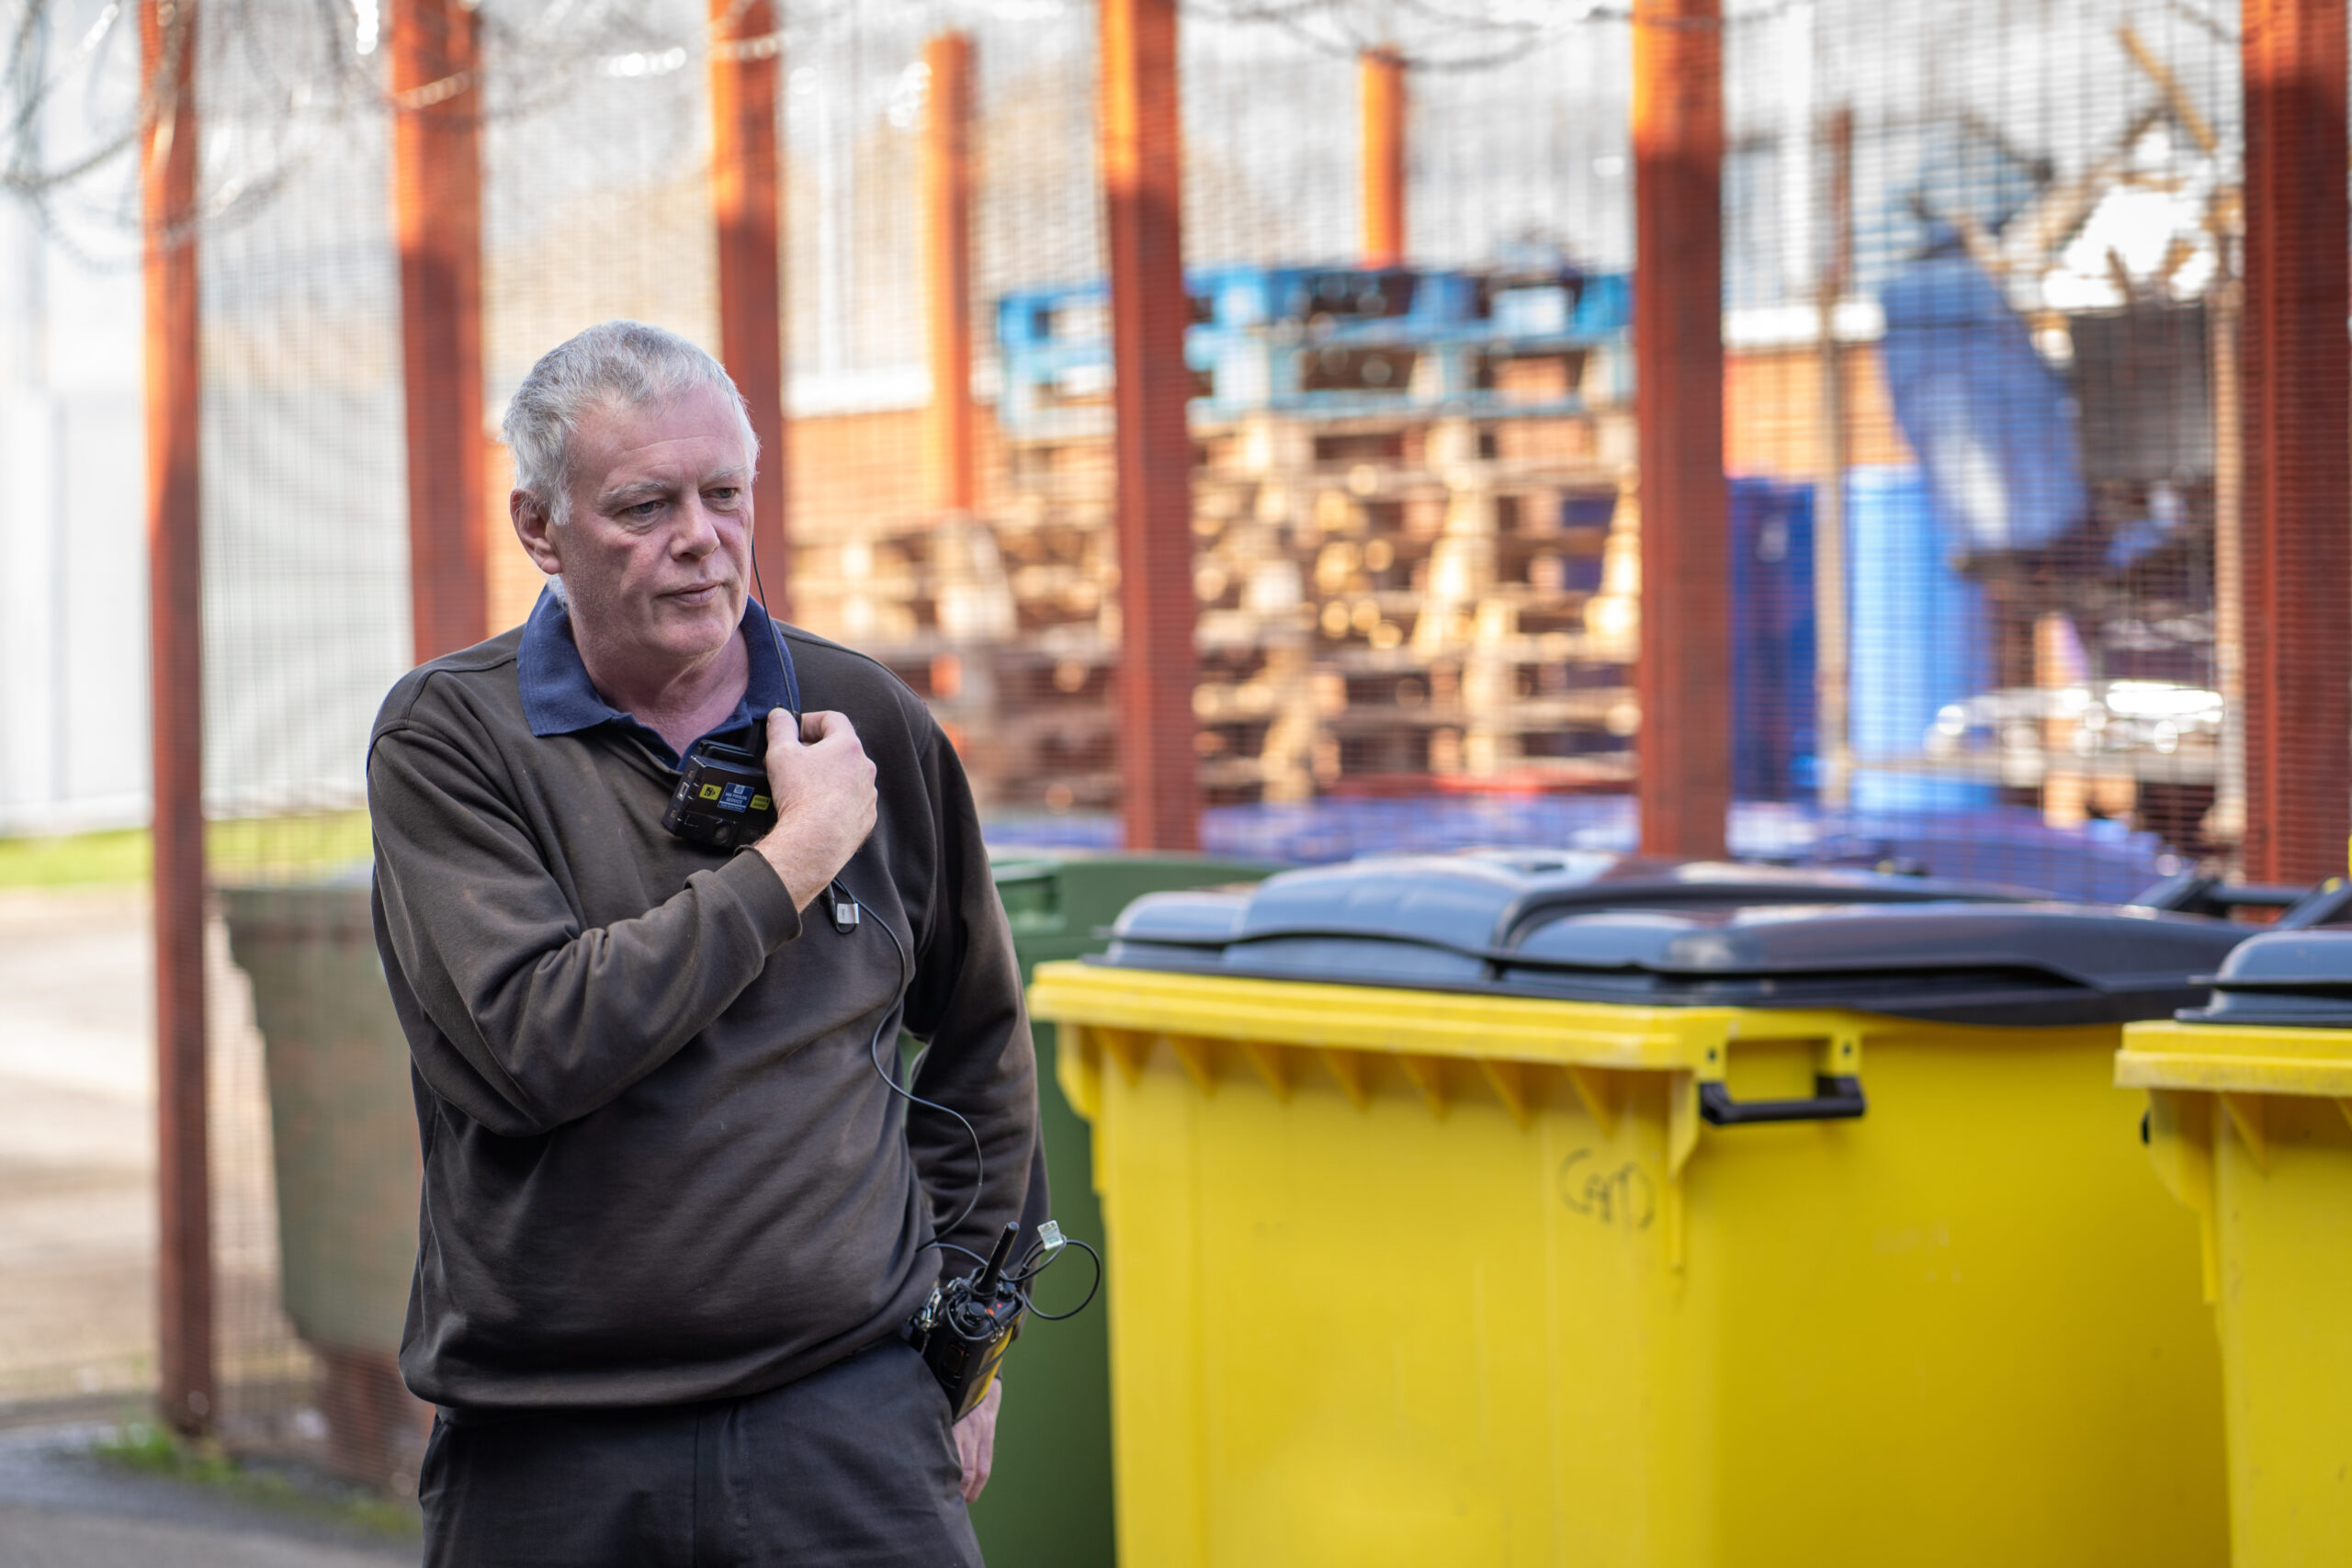 Adrian Noel who runs the waste management and recycling department at HMP Featherstone